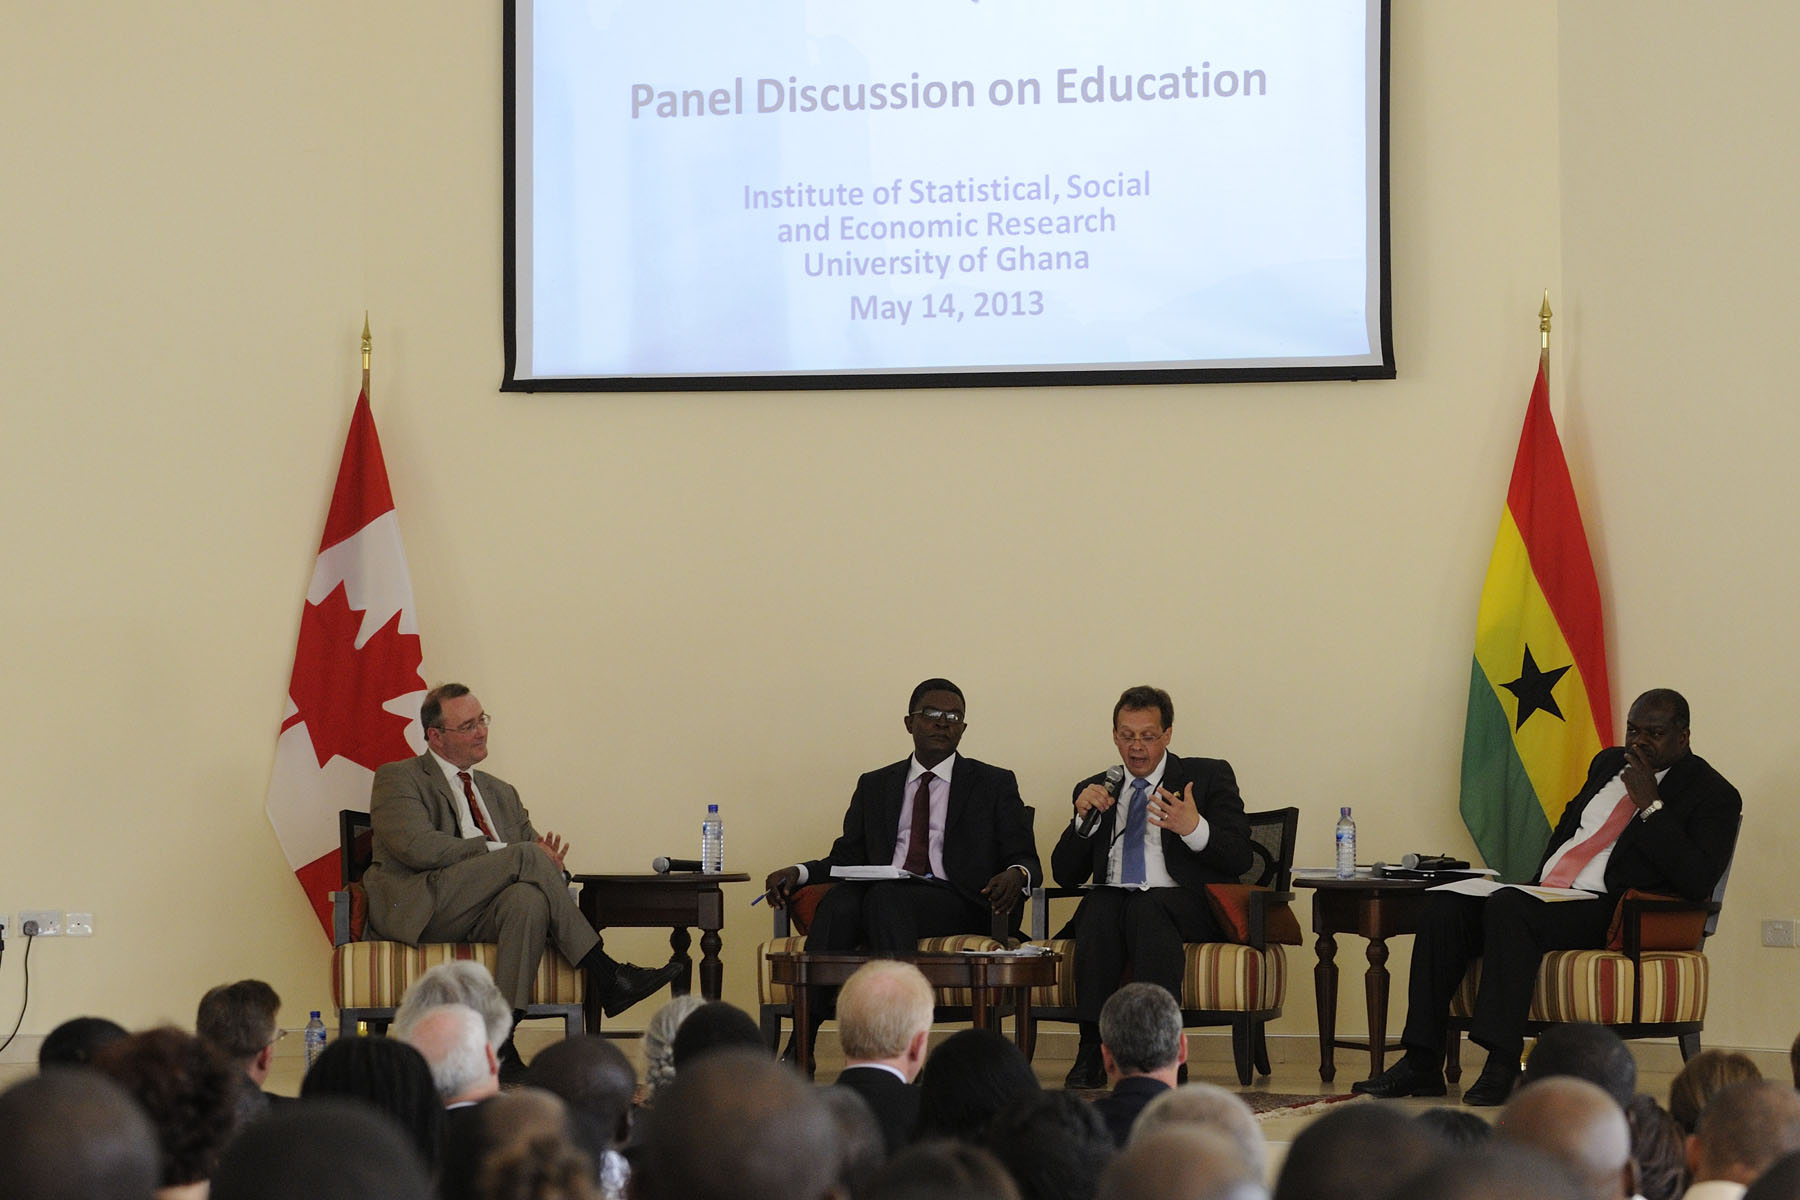 The speech was followed by a discussion with Canadian delegates Mr. Paul Davidson, President of the Association of Universities and Colleges of Canada (left), and Mr. Jean Lebel, Acting President of International Development Research Centre (right), and Ghanaian panellists, which was moderated by the Honourable Naana Jane Opoku-Agyeman, Minister of Education.